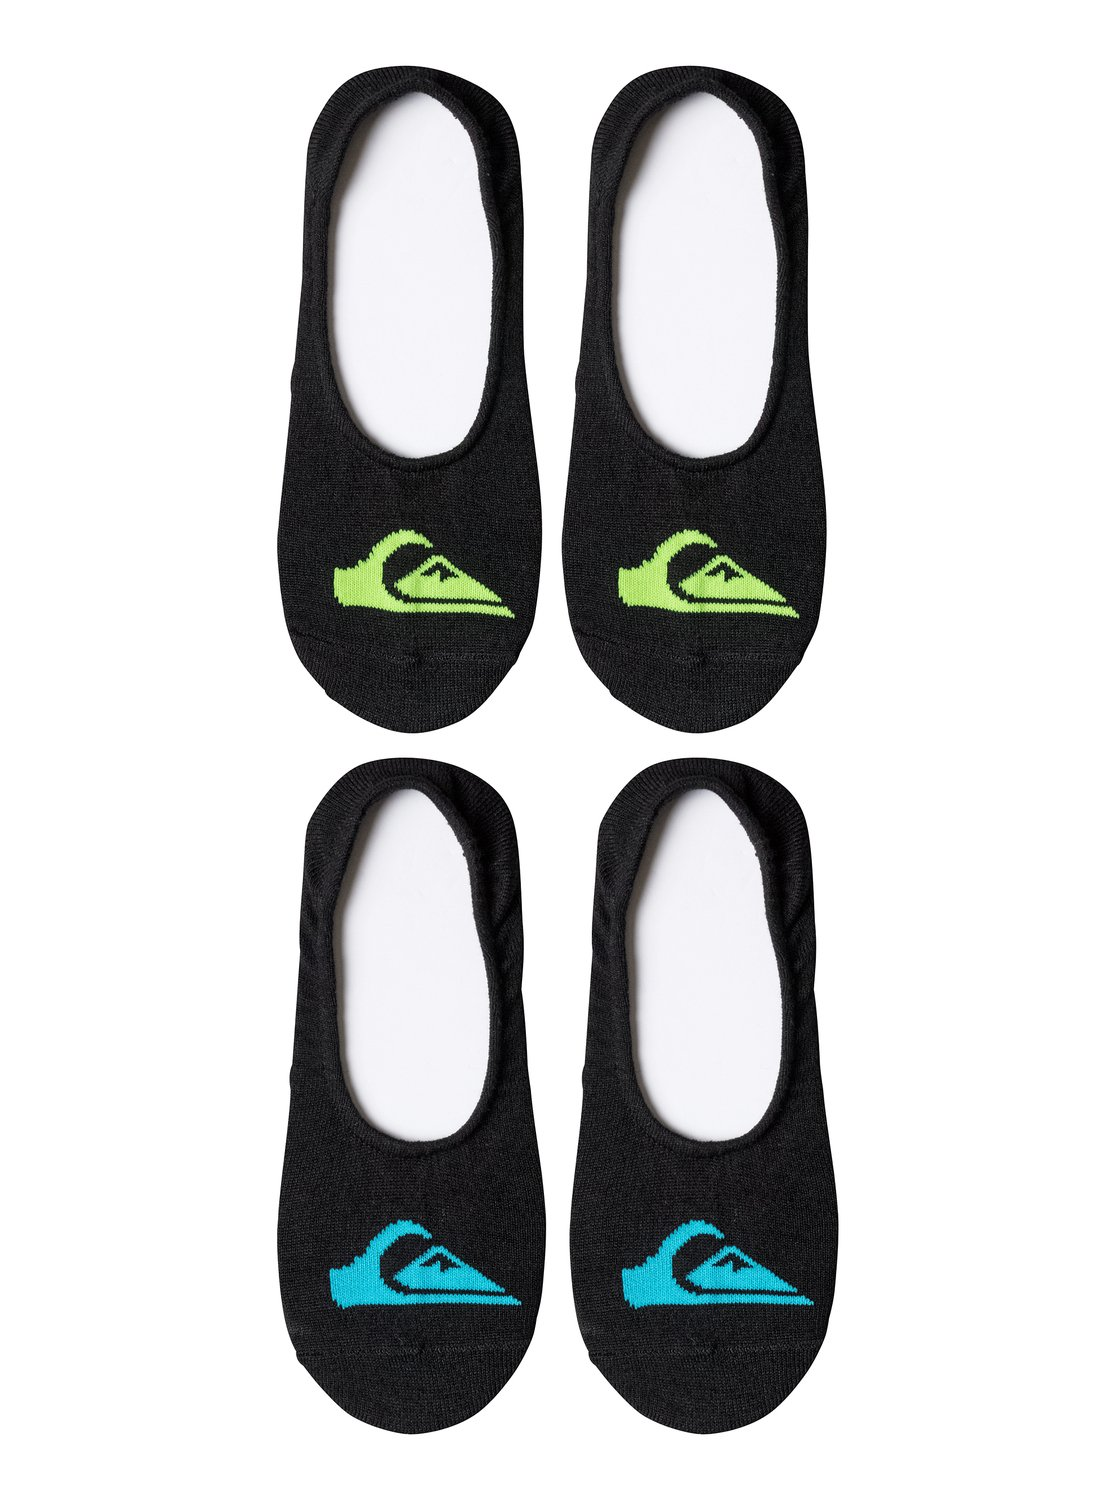 Quiksilver Logo Invisible Liner socks - 2 Pack